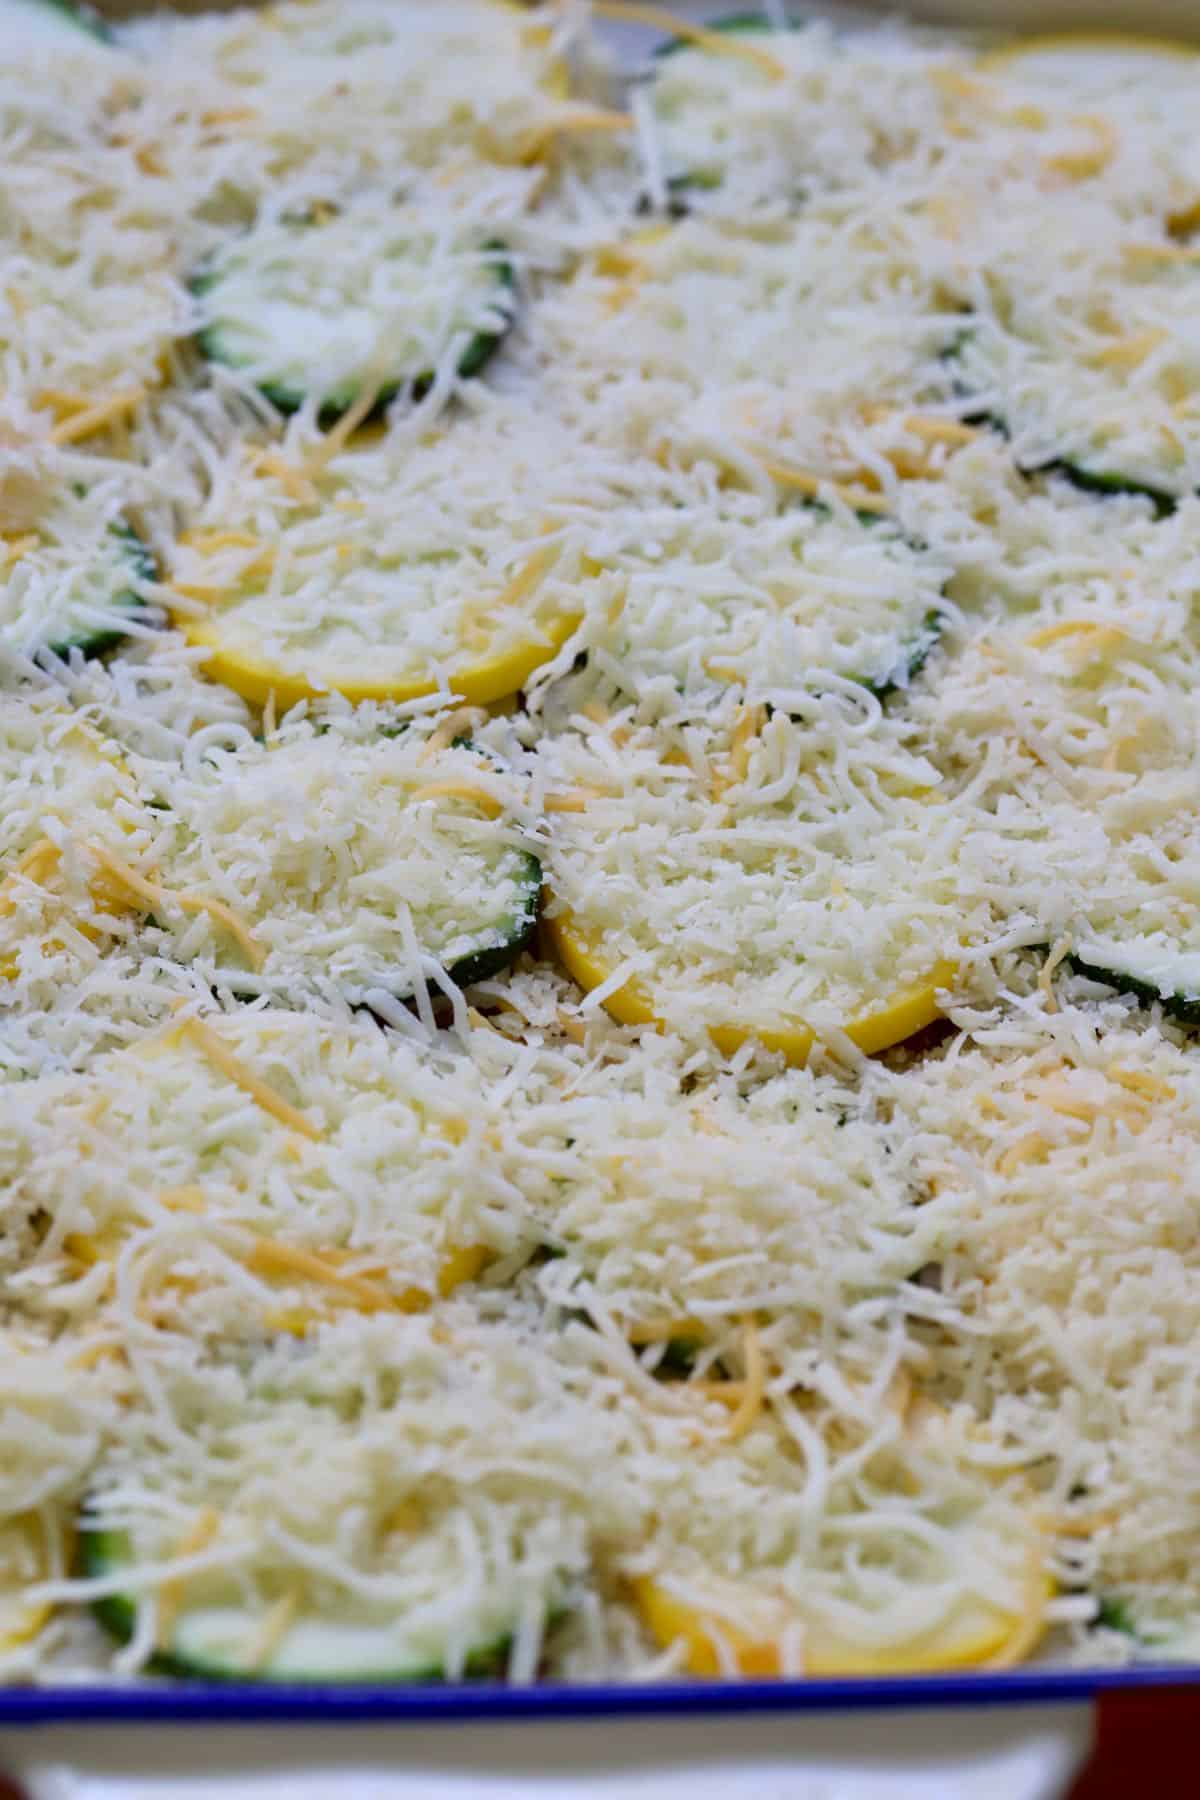 Mozzarella and parmesan cheeses covering slices of squash.